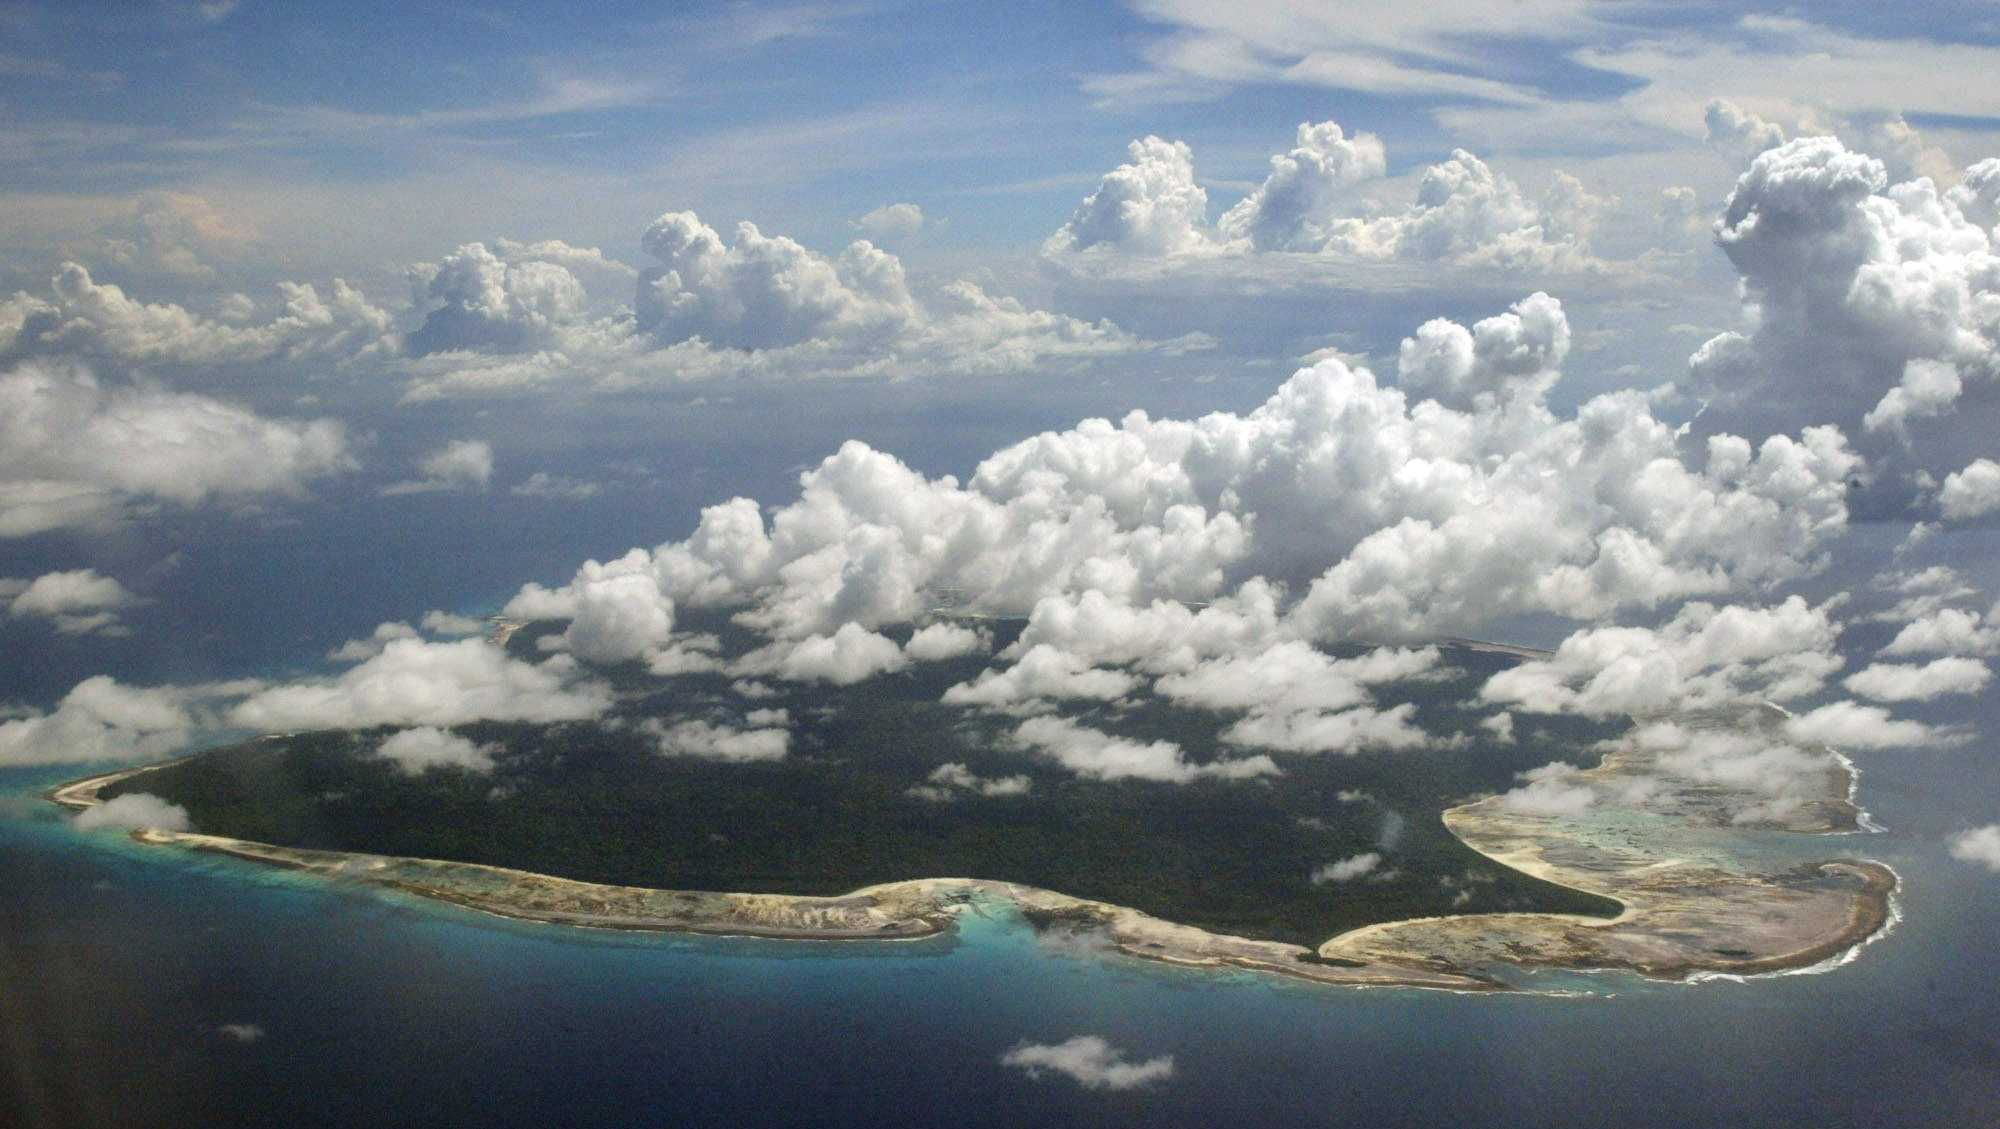 In this Nov. 14, 2005 file photo, clouds hang over the North Sentinel Island, in India's southeastern Andaman and Nicobar Islands. India used heat sensors on flights over hundreds of uninhabited Andaman Sea islands Friday, March 14, 2014, and will expand its search for the missing Malaysia Airlines jet farther west into the Bay of Bengal, officials said. The Indian-controlled archipelago that stretches south of Myanmar contains 572 islands covering an area of 720-by-52 kilometers. Only 37 are inhabited, with the rest covered in dense forests.